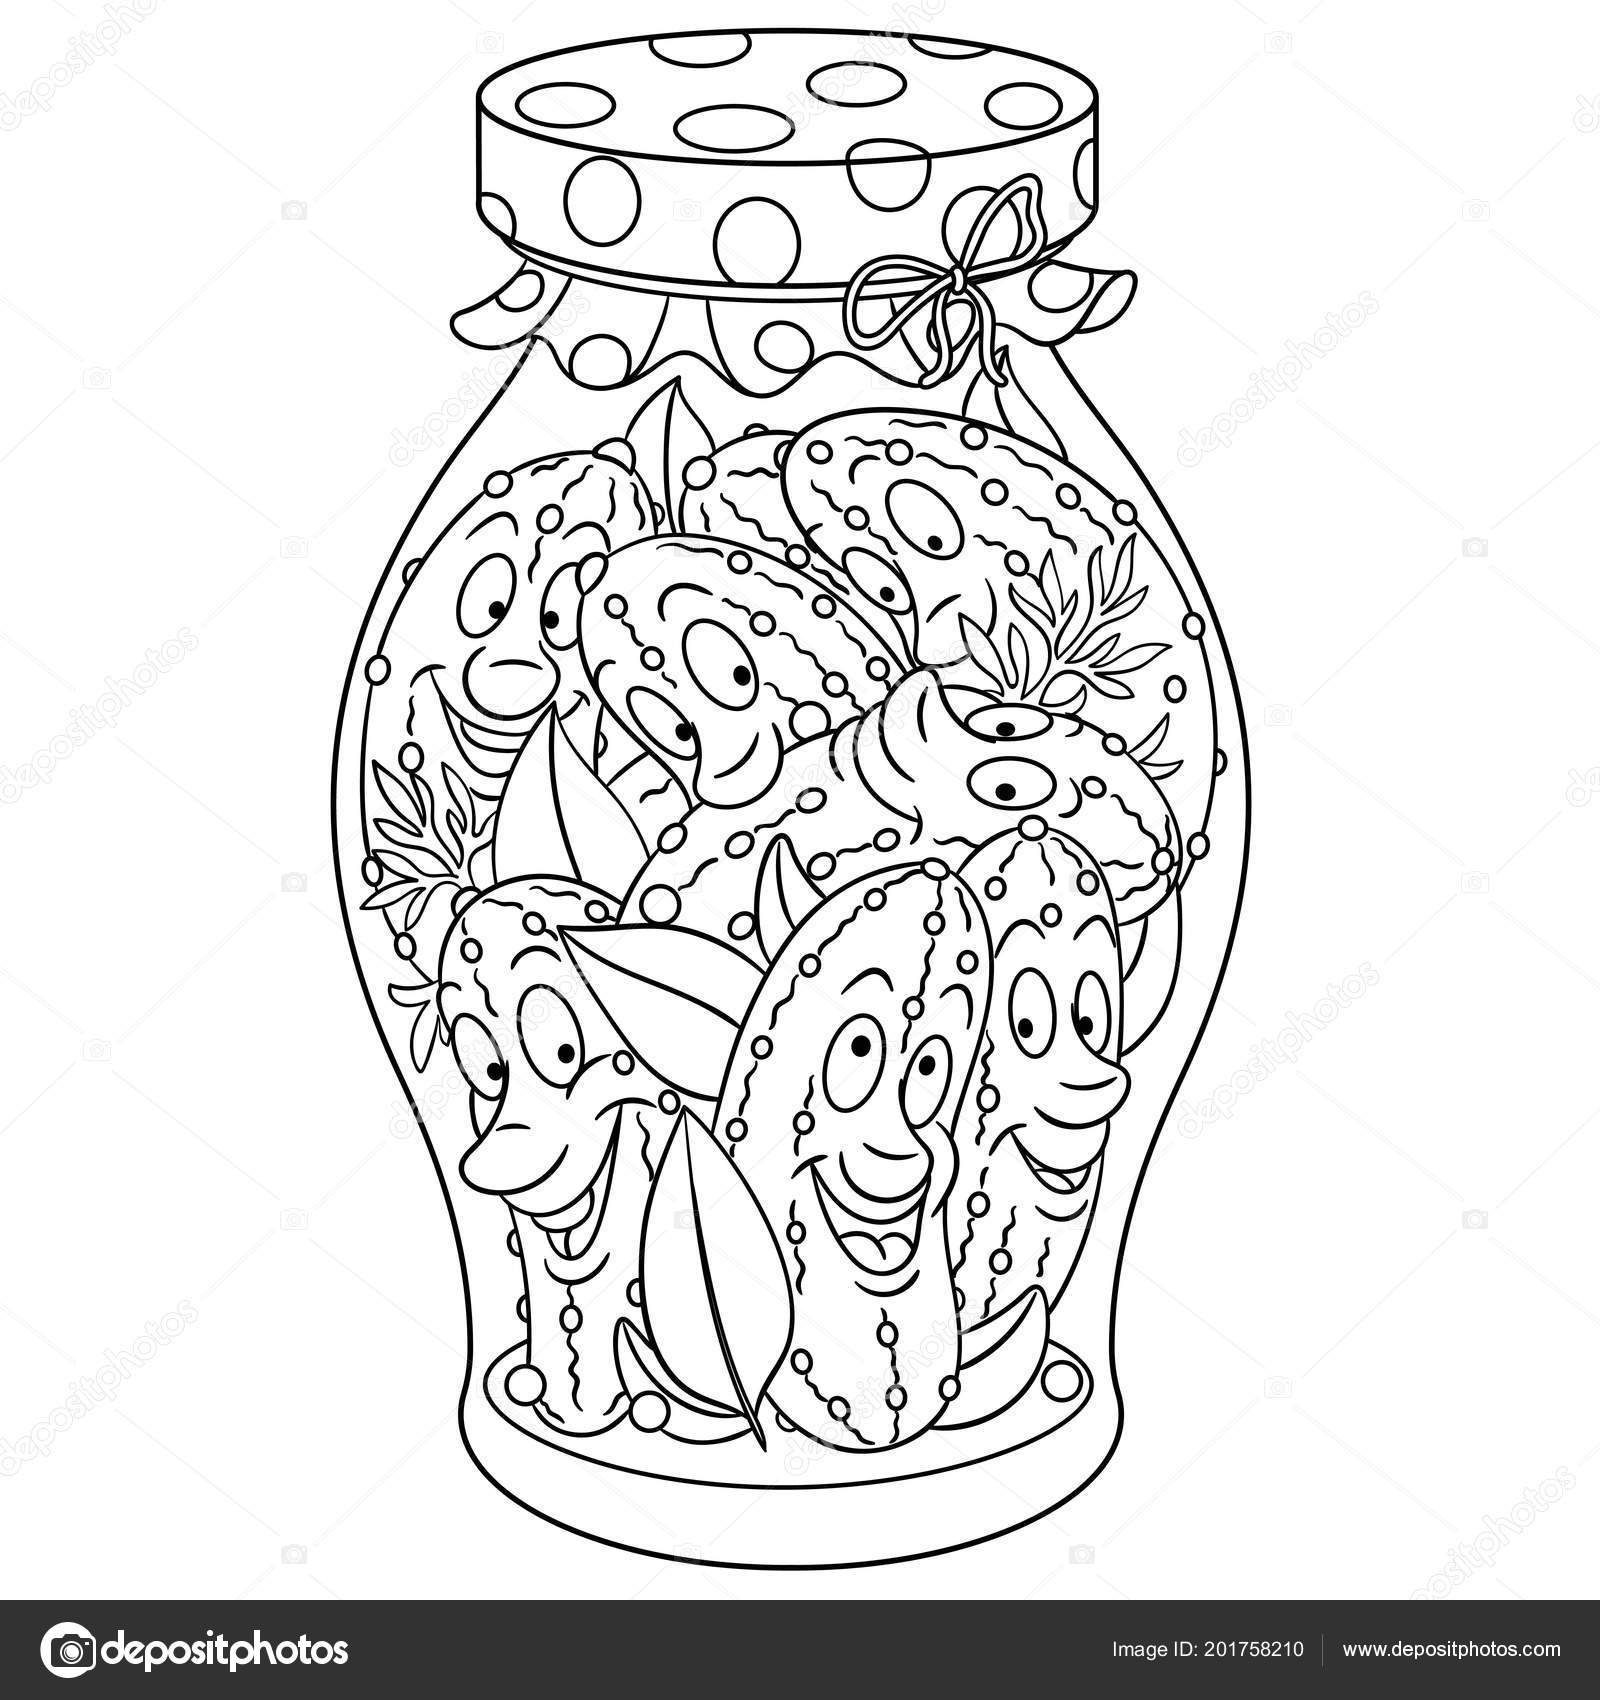 Coloring Page Coloring Book Pickles Jar Pickled Cucumbers Happy